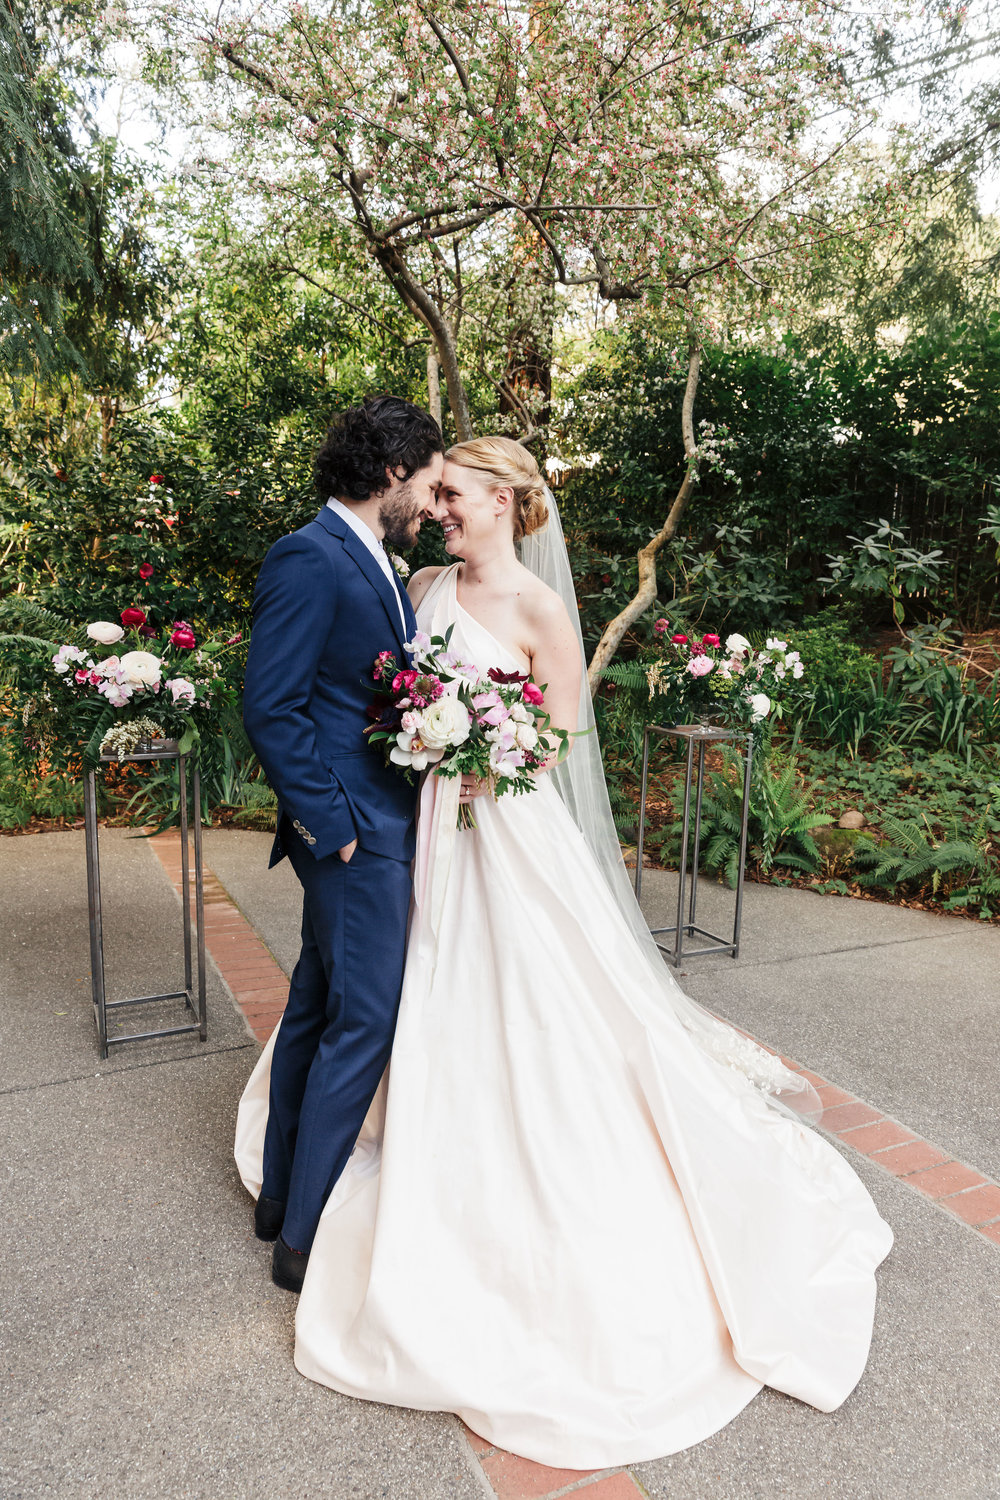 Elegant garden wedding at The Outdoor Art Club in Mill Valley, California with Torrey Fox Photography, Venn Floral and Oh Splendid Day.